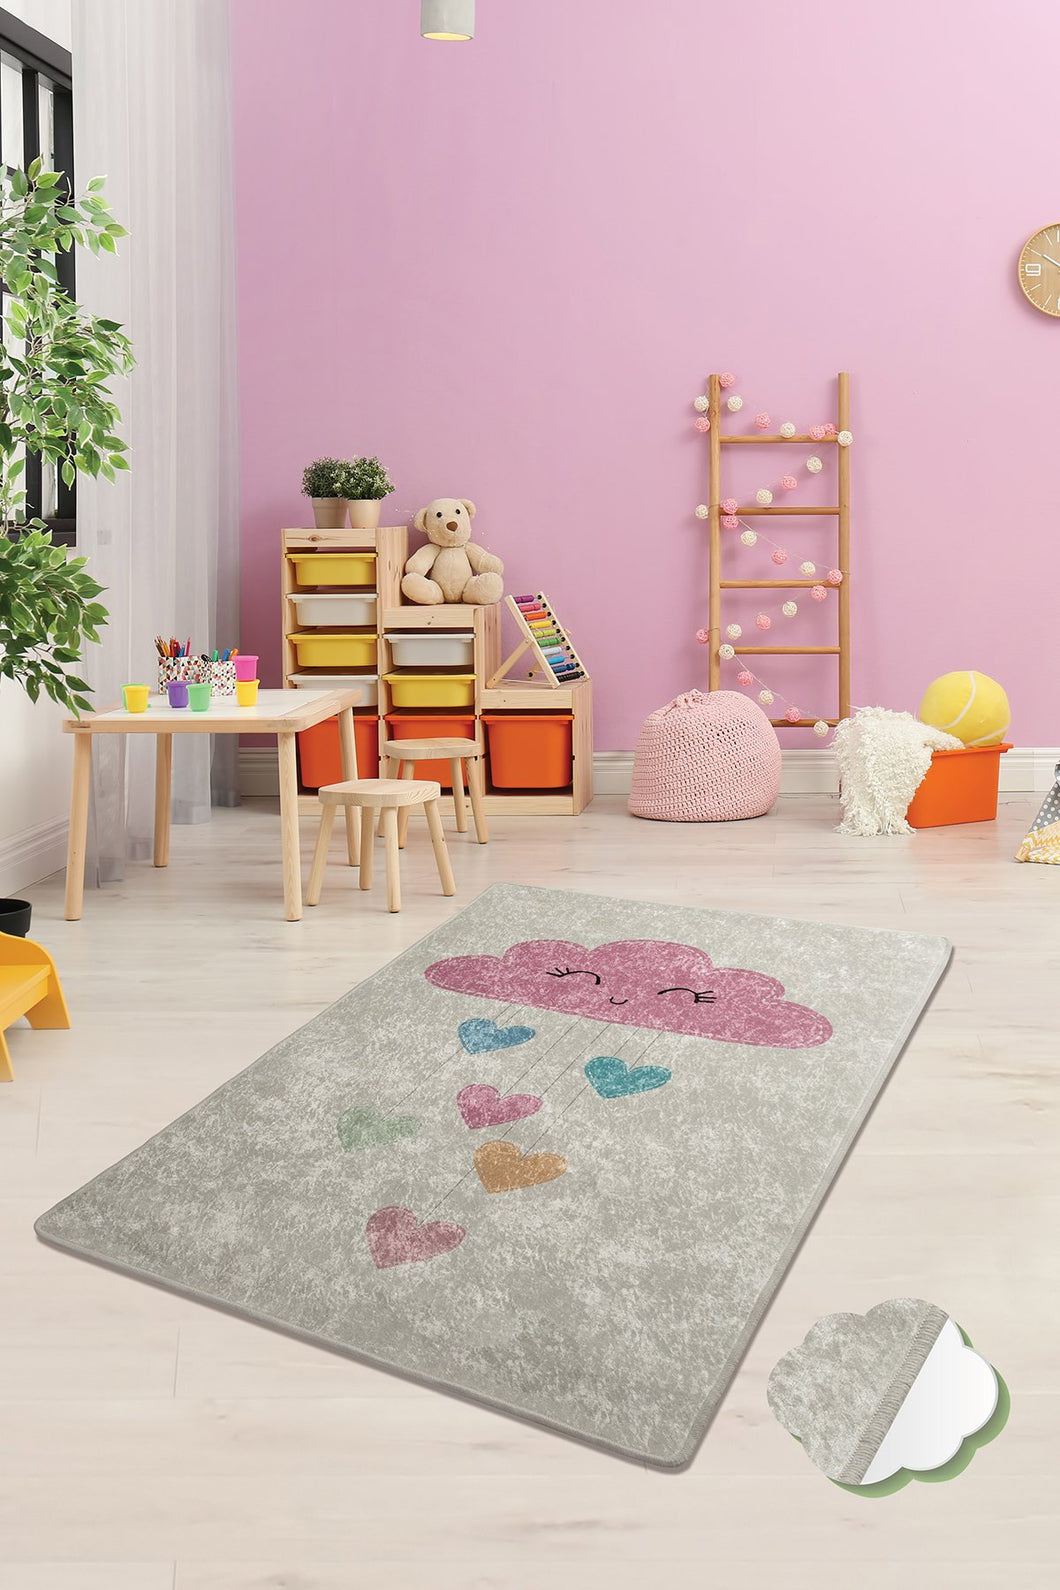 RugstoreX Cloud Ekru Rugs for kids Highway  3'x 5' 39